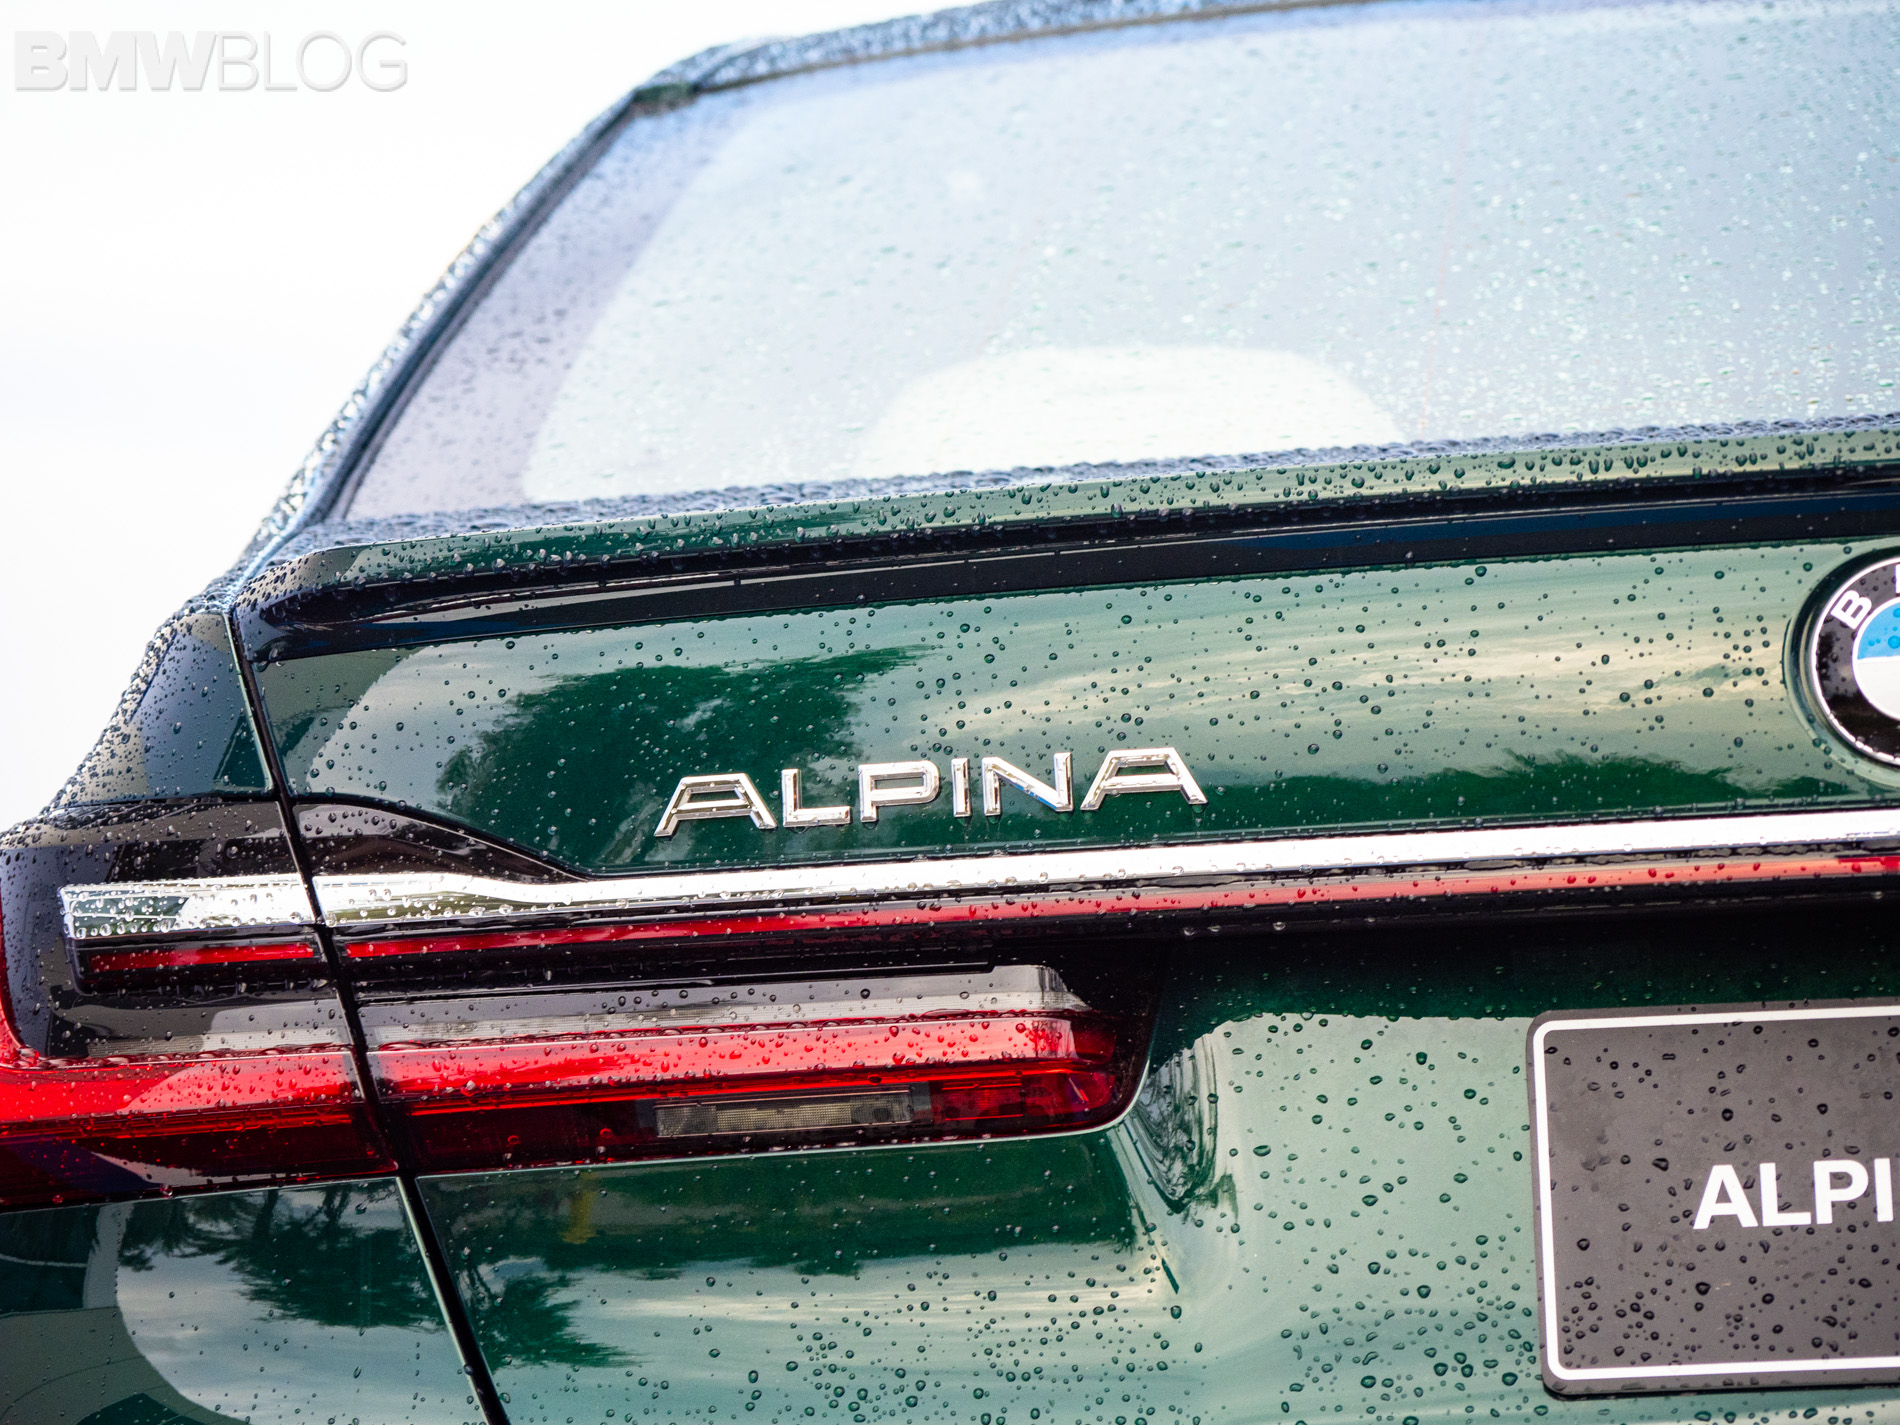 SPIED: New spy shots of the upcoming BMW ALPINA XB7